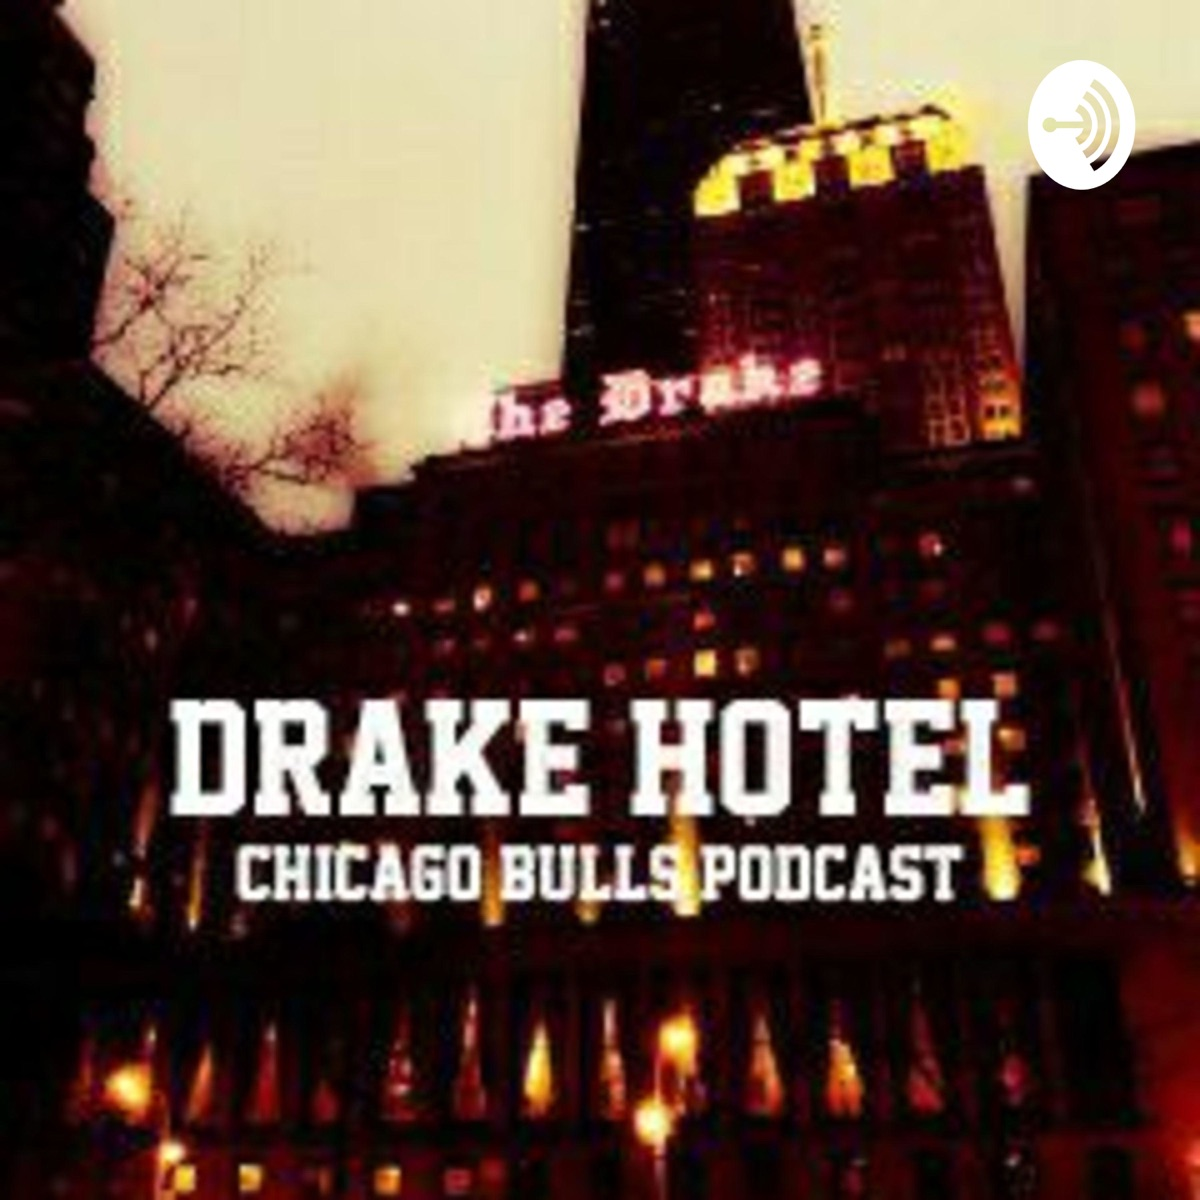 Drake Hotel: Chicago Bulls Podcasti